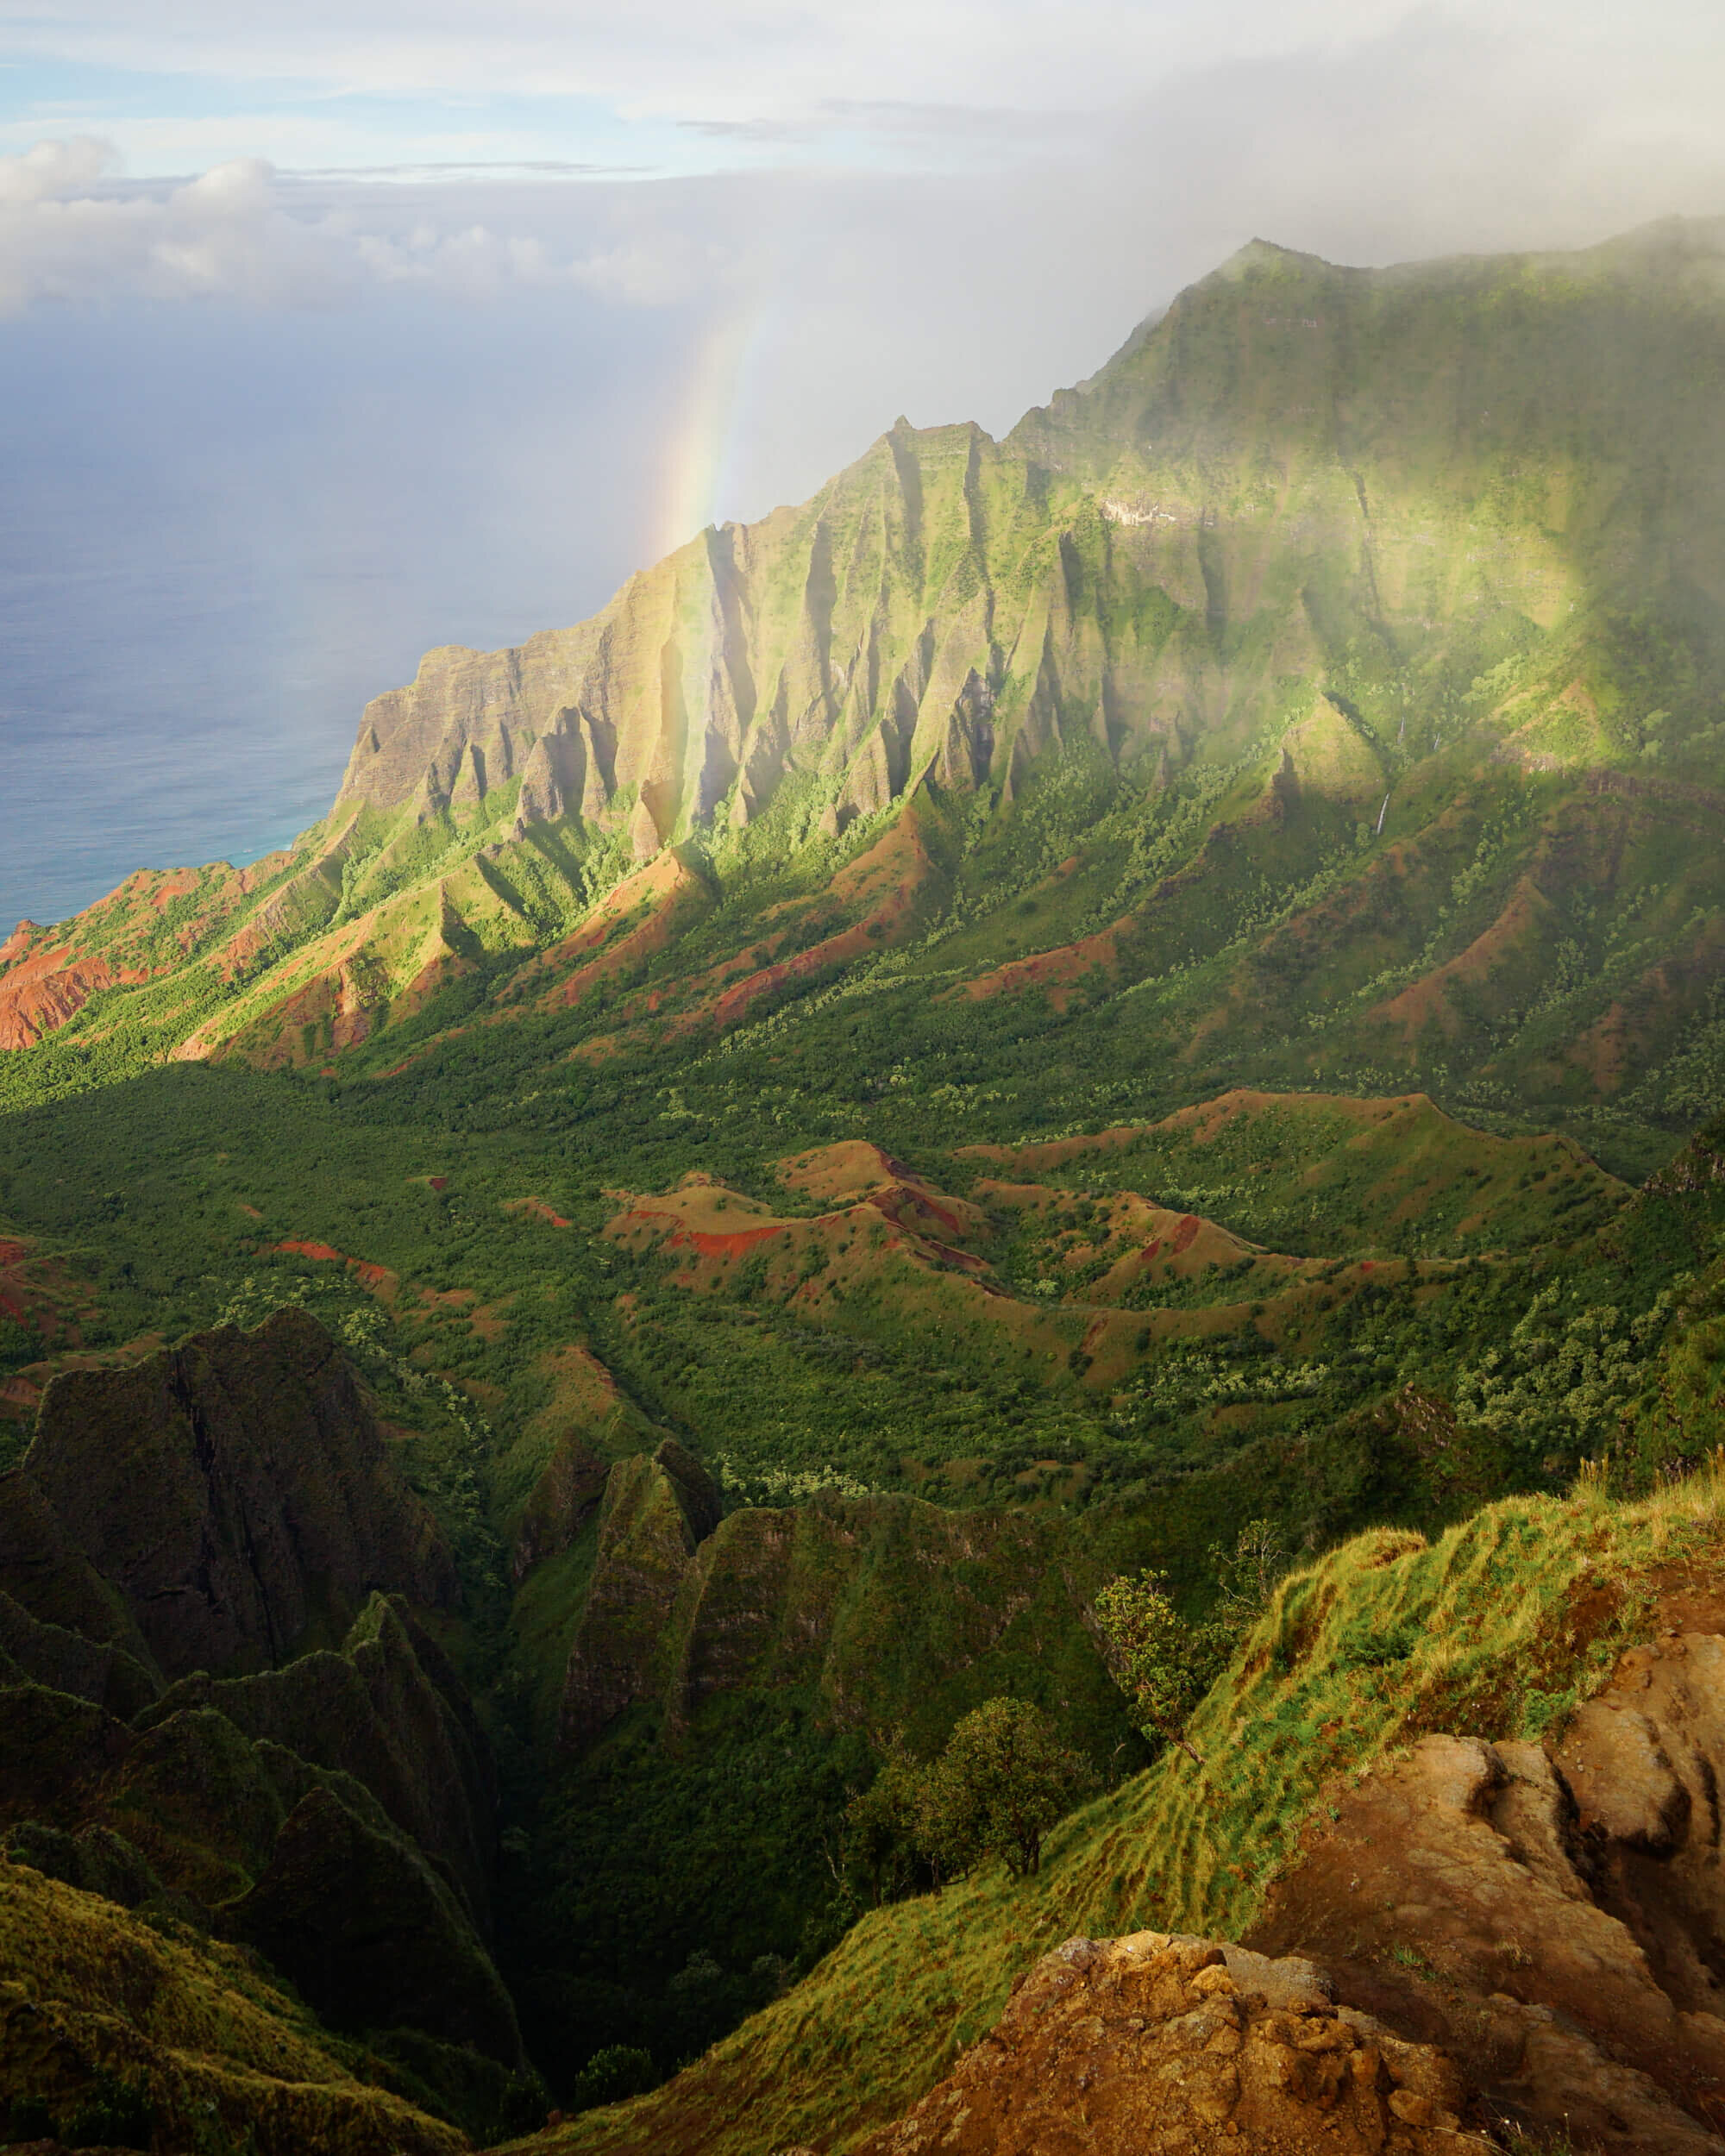 The view from the Pu'u O Kila Lookout.